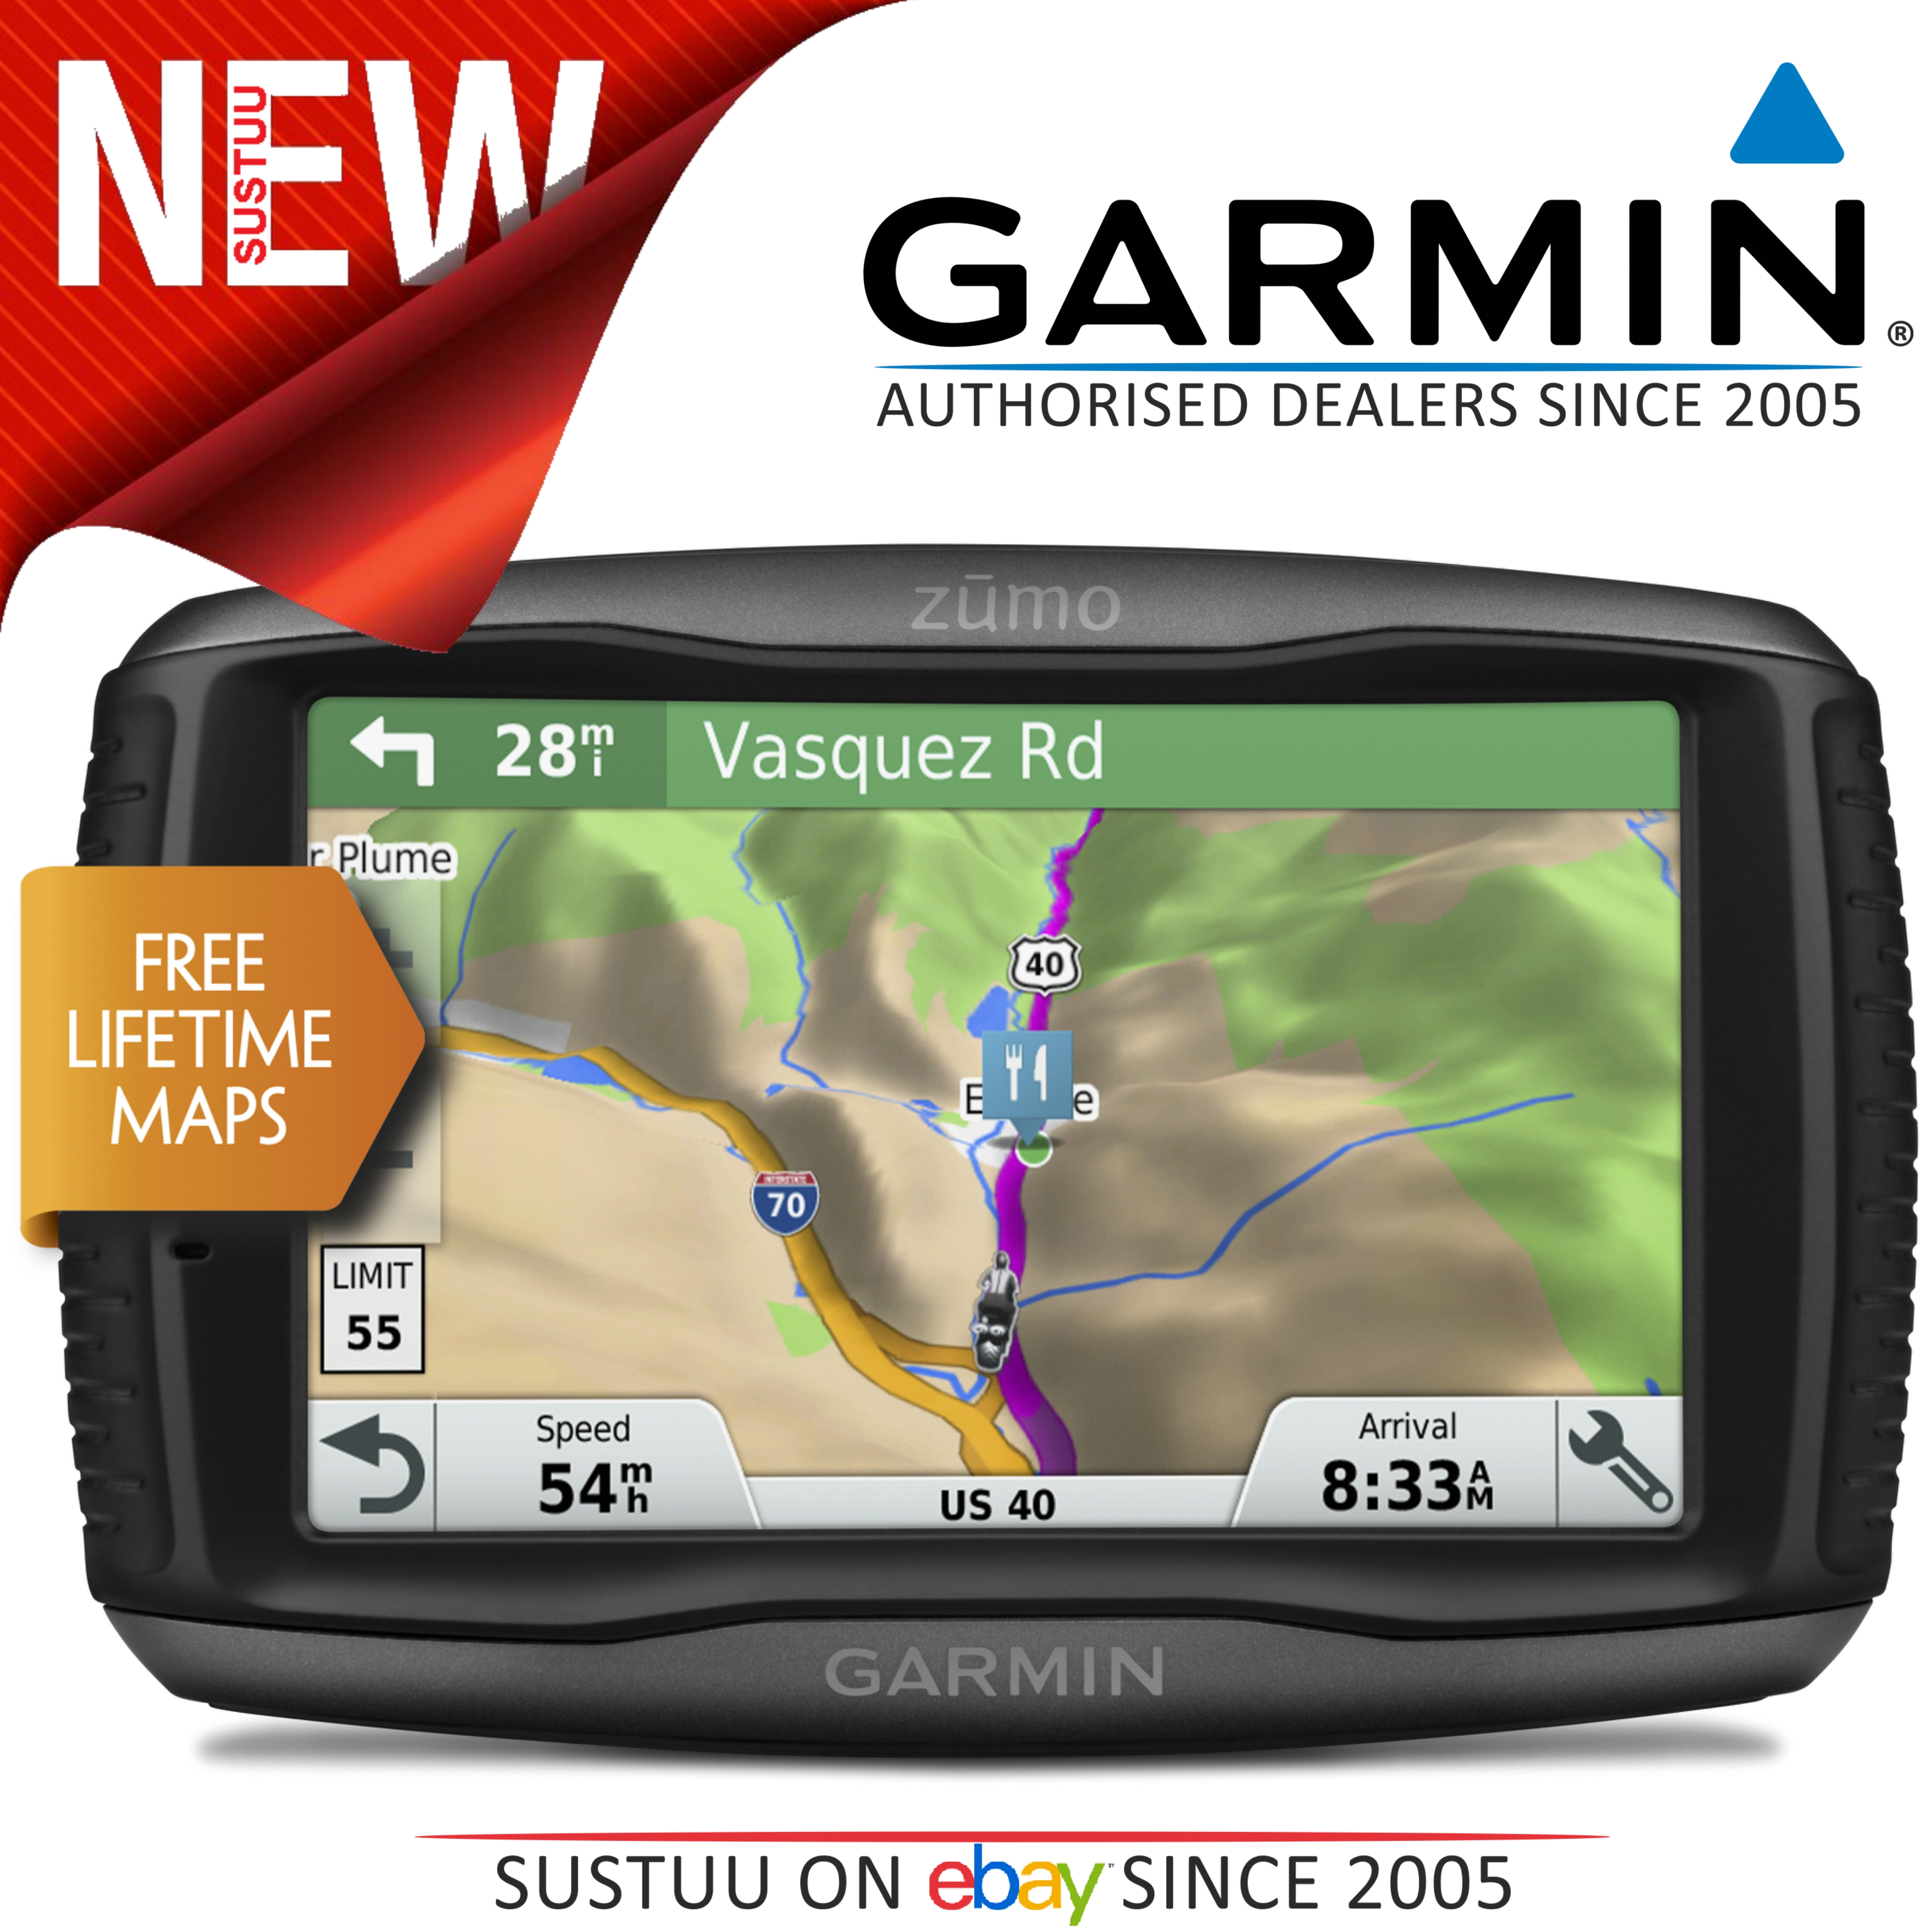 garmin zumo 595lm motorcycle gps satnav free uk europe lifetime maps update new sustuu. Black Bedroom Furniture Sets. Home Design Ideas